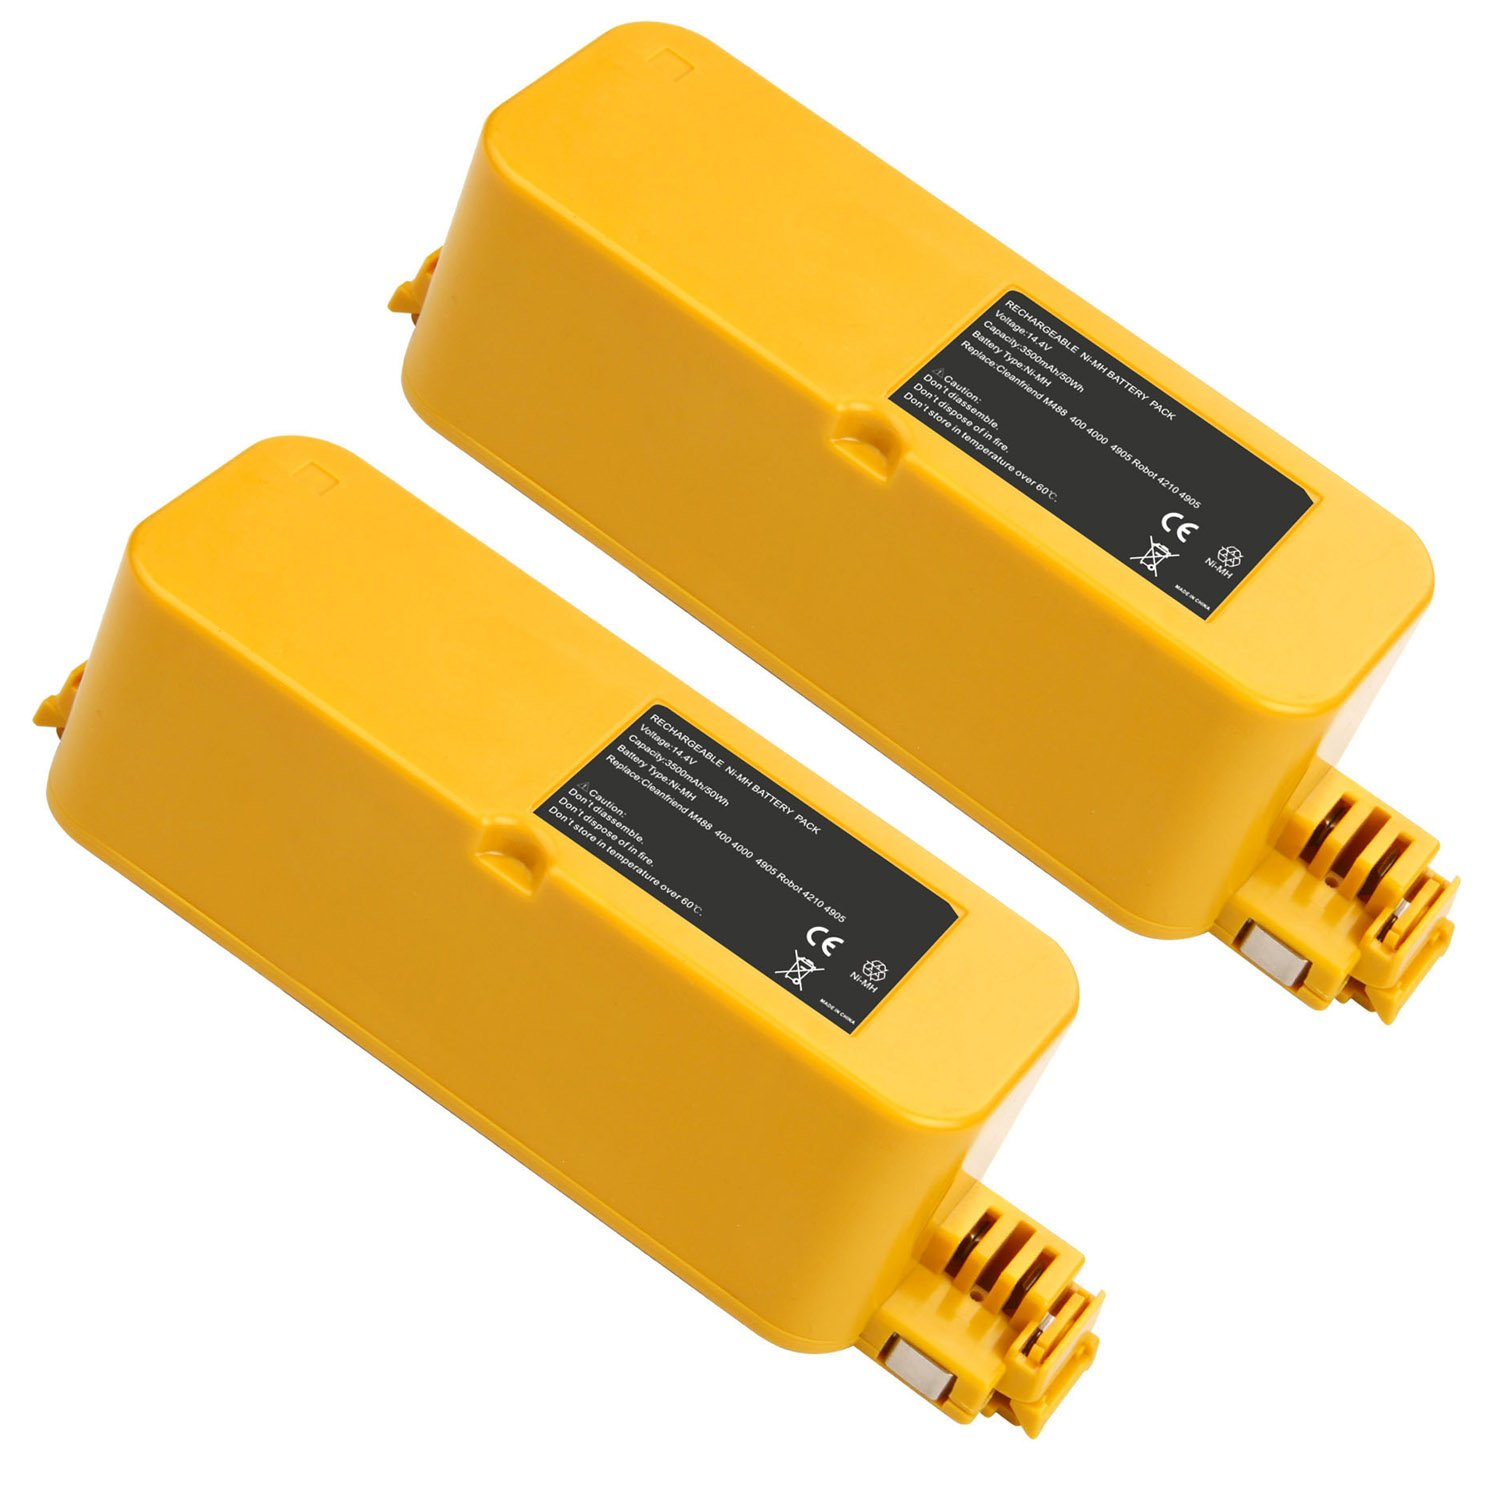 14.4V 3500mAh Ni-MH Replacement Battery for iRobot Roomba 400 series Roomba 400 405 410 415 416 418 4000 4100 4105 4110 4130 4150 4170 4188 4210 4220 4225 4230 4232 4260 4296 Vacuum Cleaner (2-pack) by Fancy Buying